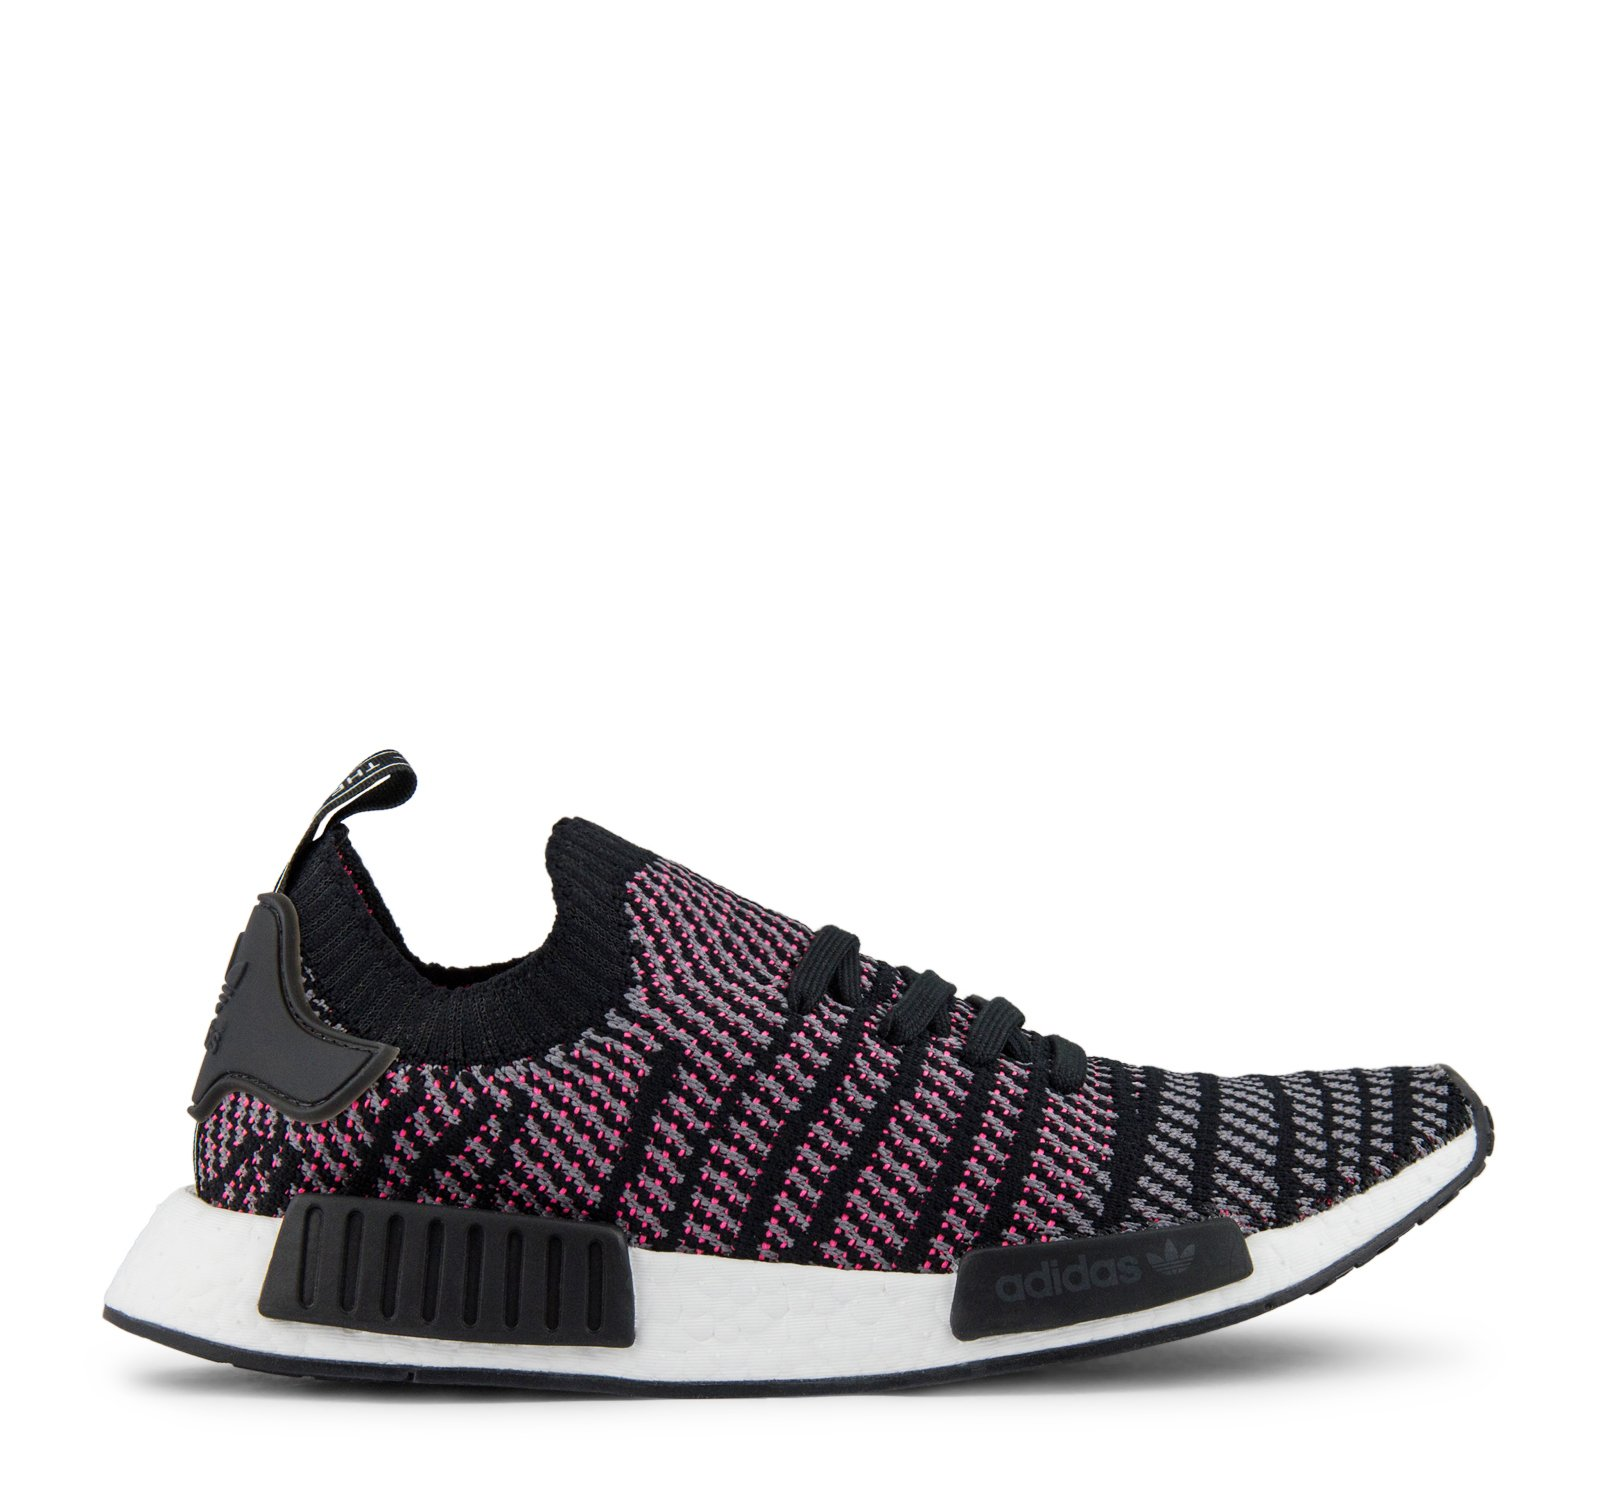 Adidas Originals NMD_R1 STLT PK CQ2386 - Black/Grey/Pink